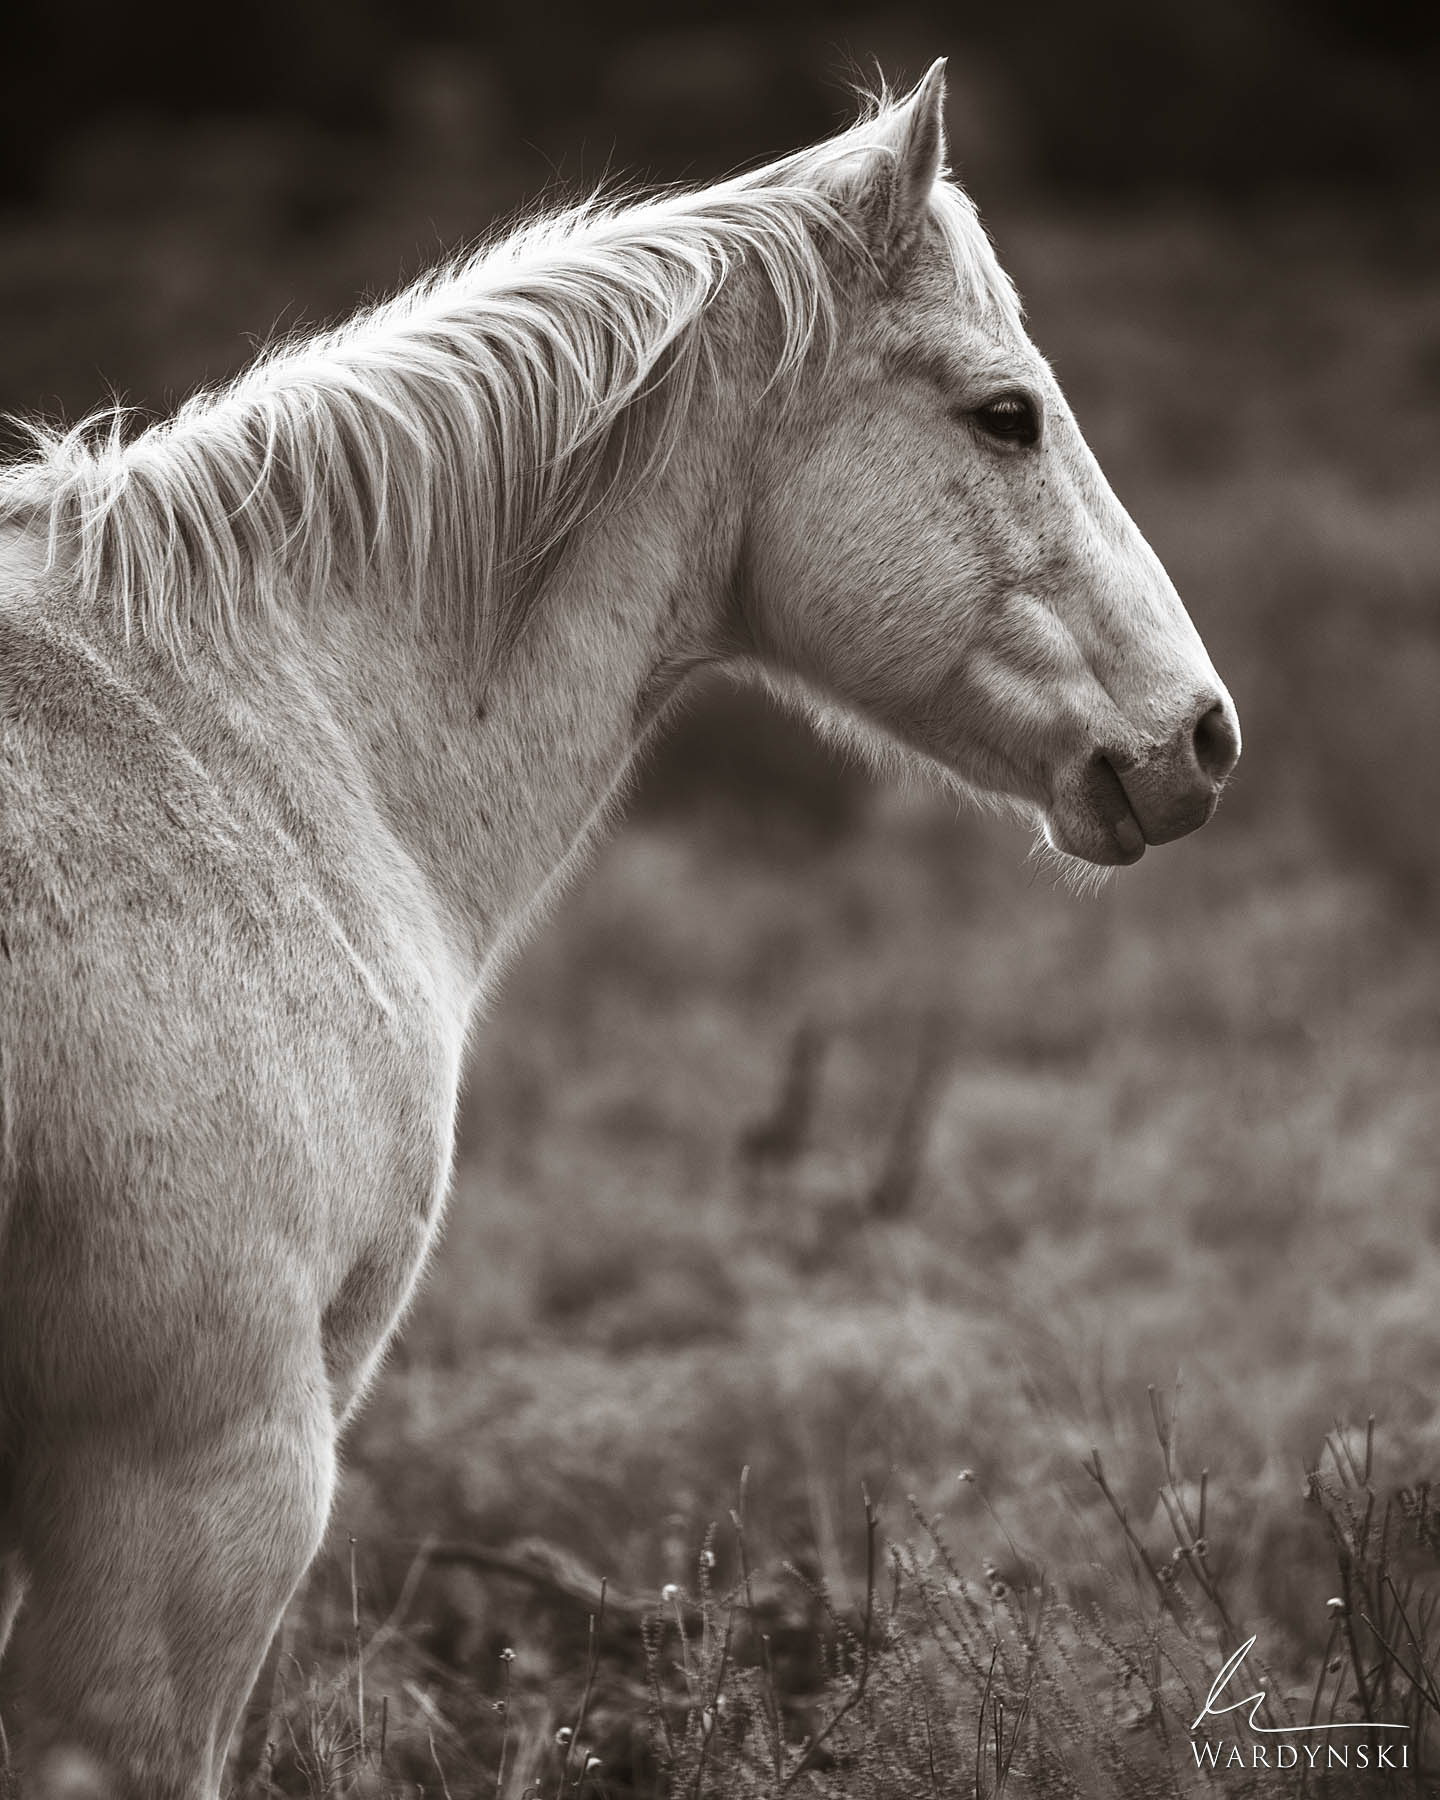 Sepia Fine Art Print | Limited Edition of 35  The profile of a white mustang shows off his impressive build yet gentle demeanor...